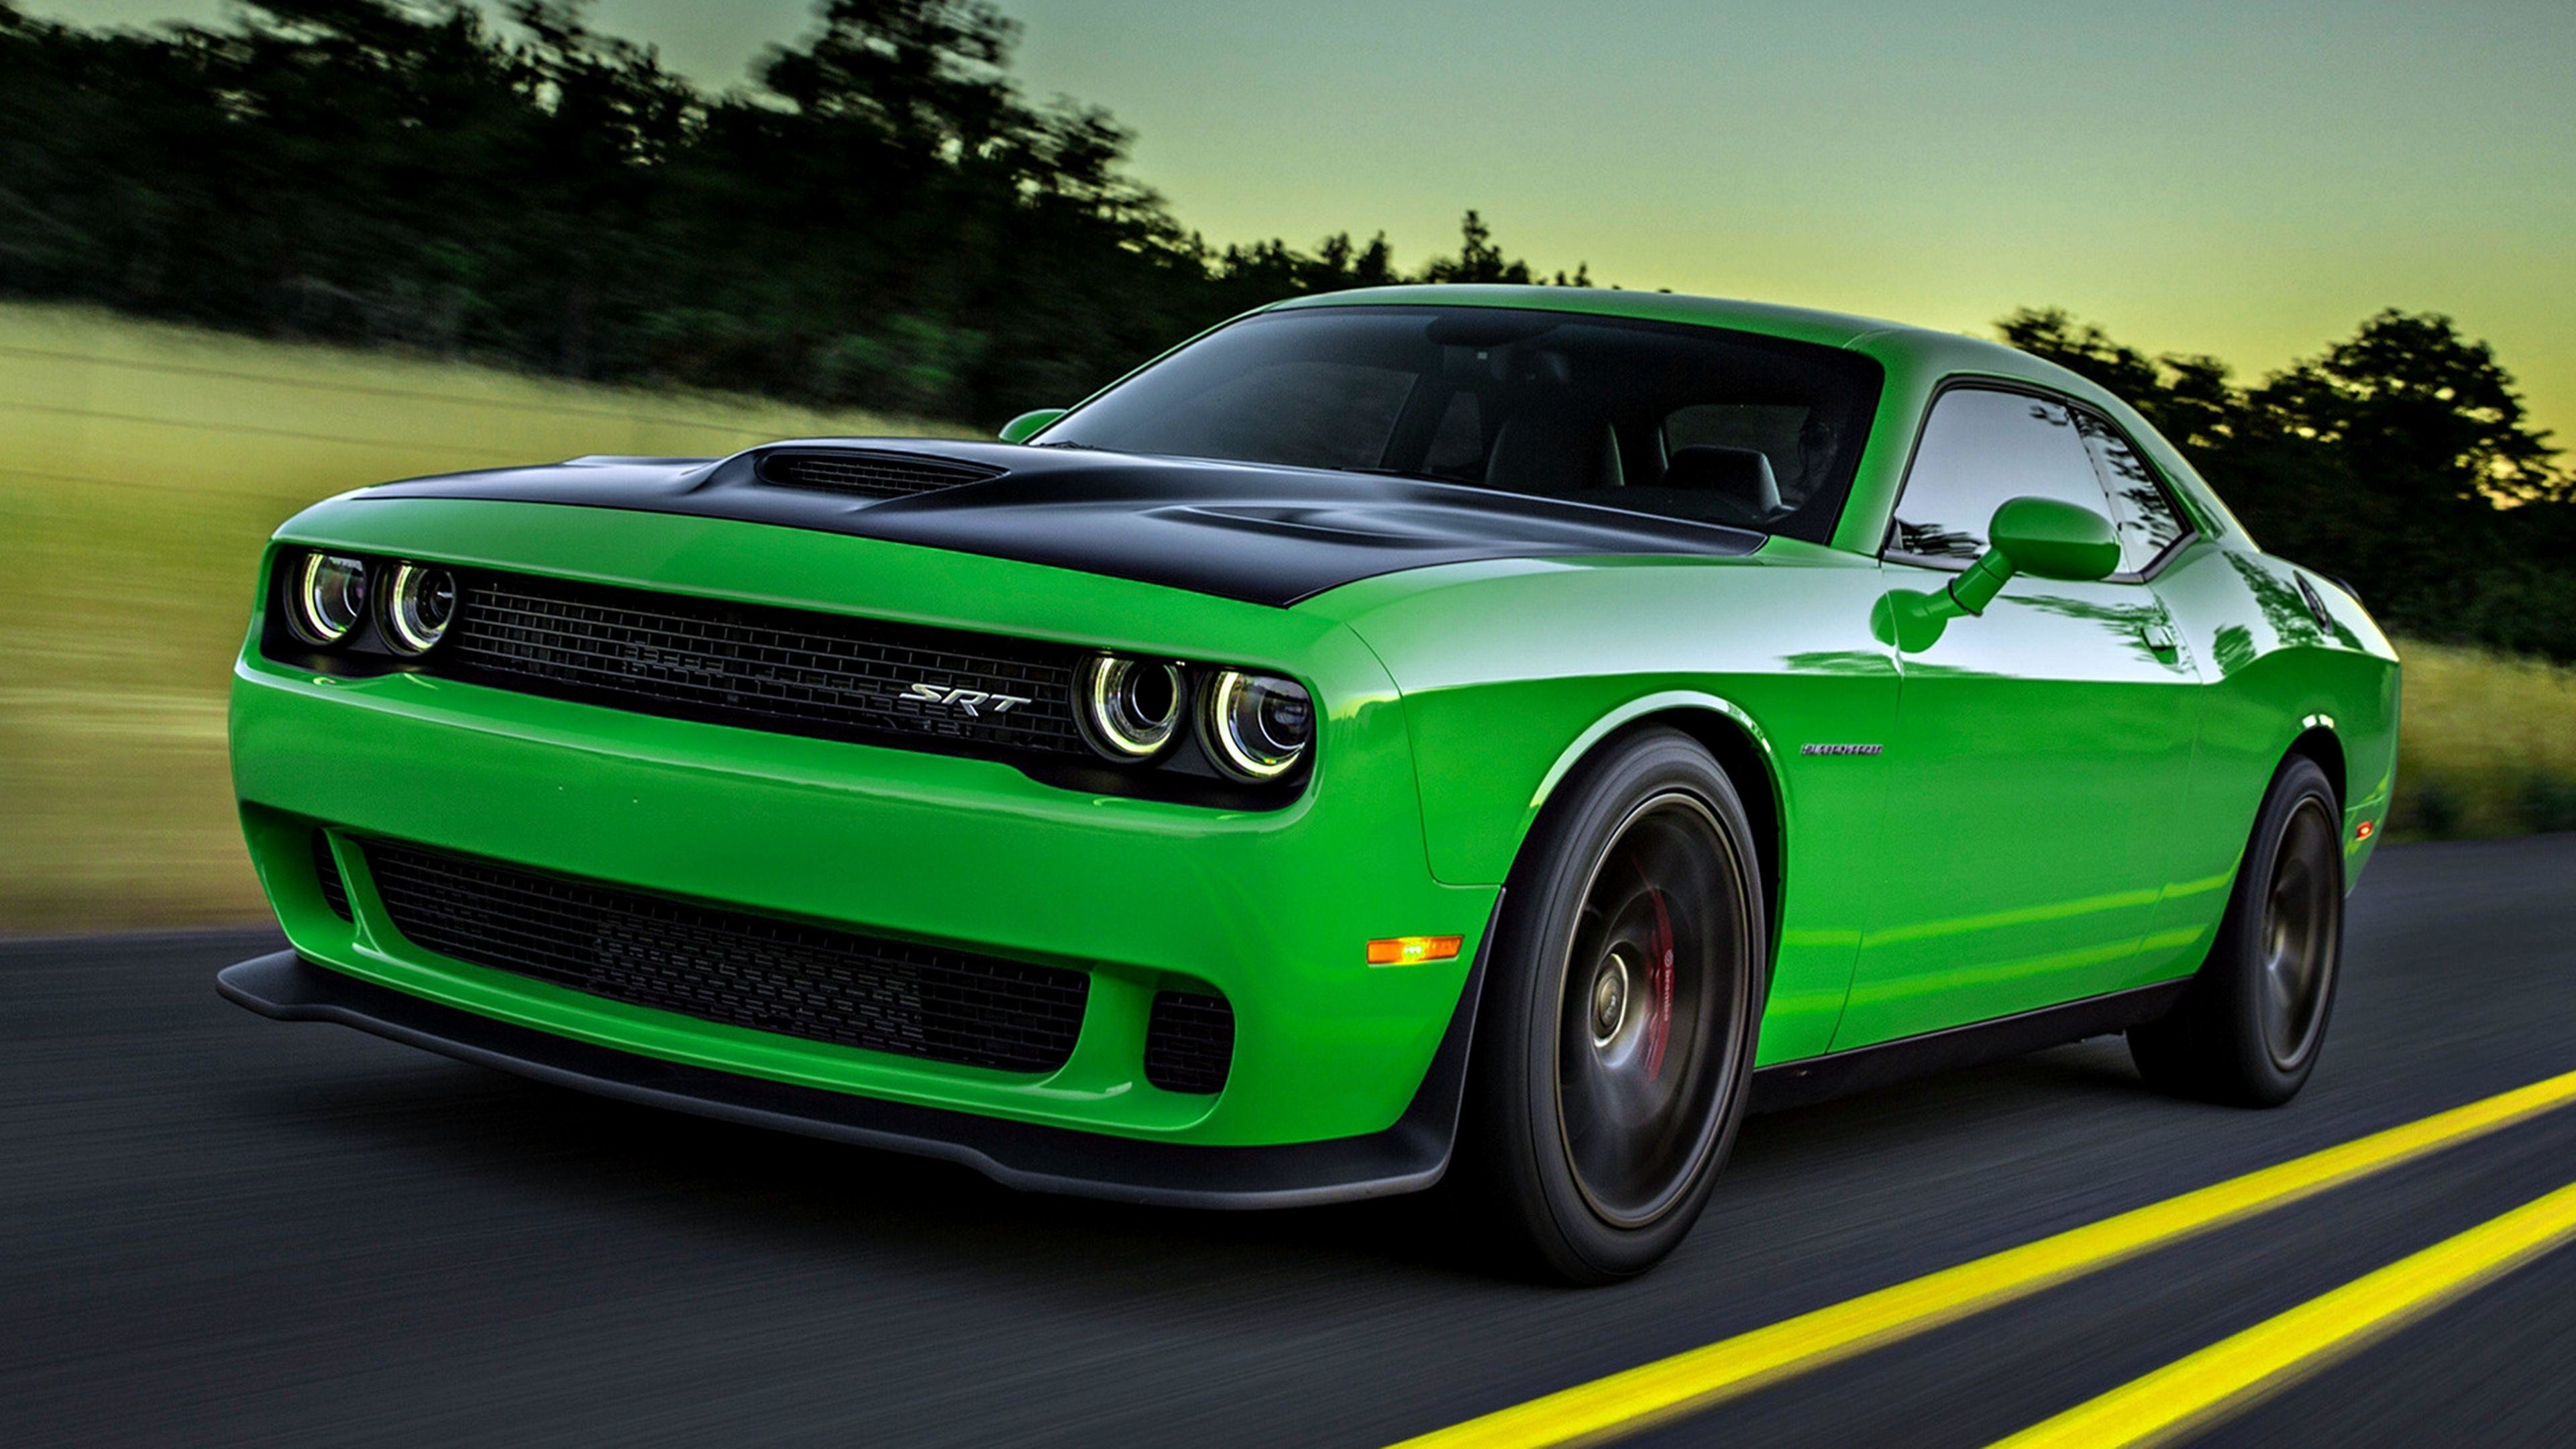 Res: 3840x2160, 34 Dodge Challenger SRT HD Wallpapers | Backgrounds - Wallpaper Abyss